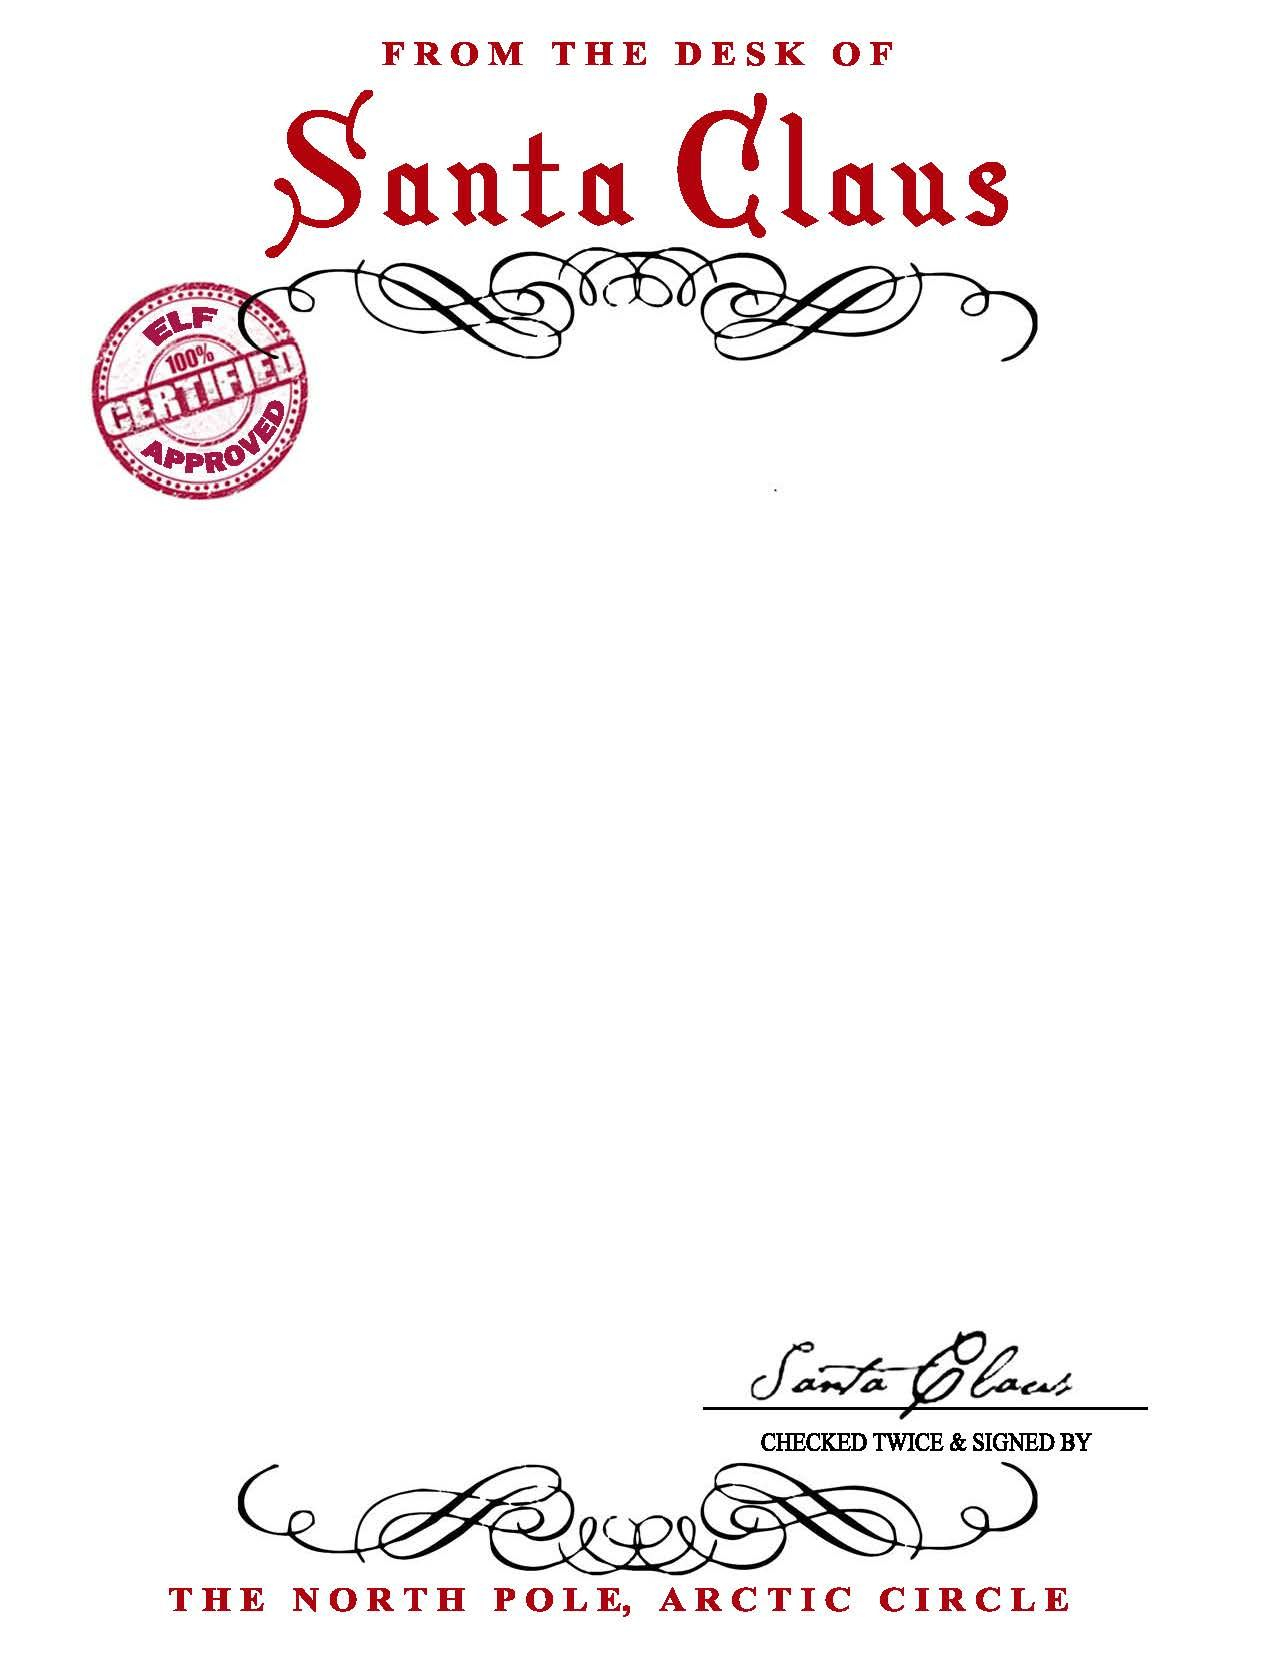 North Pole Letter Template - Santa Claus Letterhead Will Bring Lots Of Joy to Children